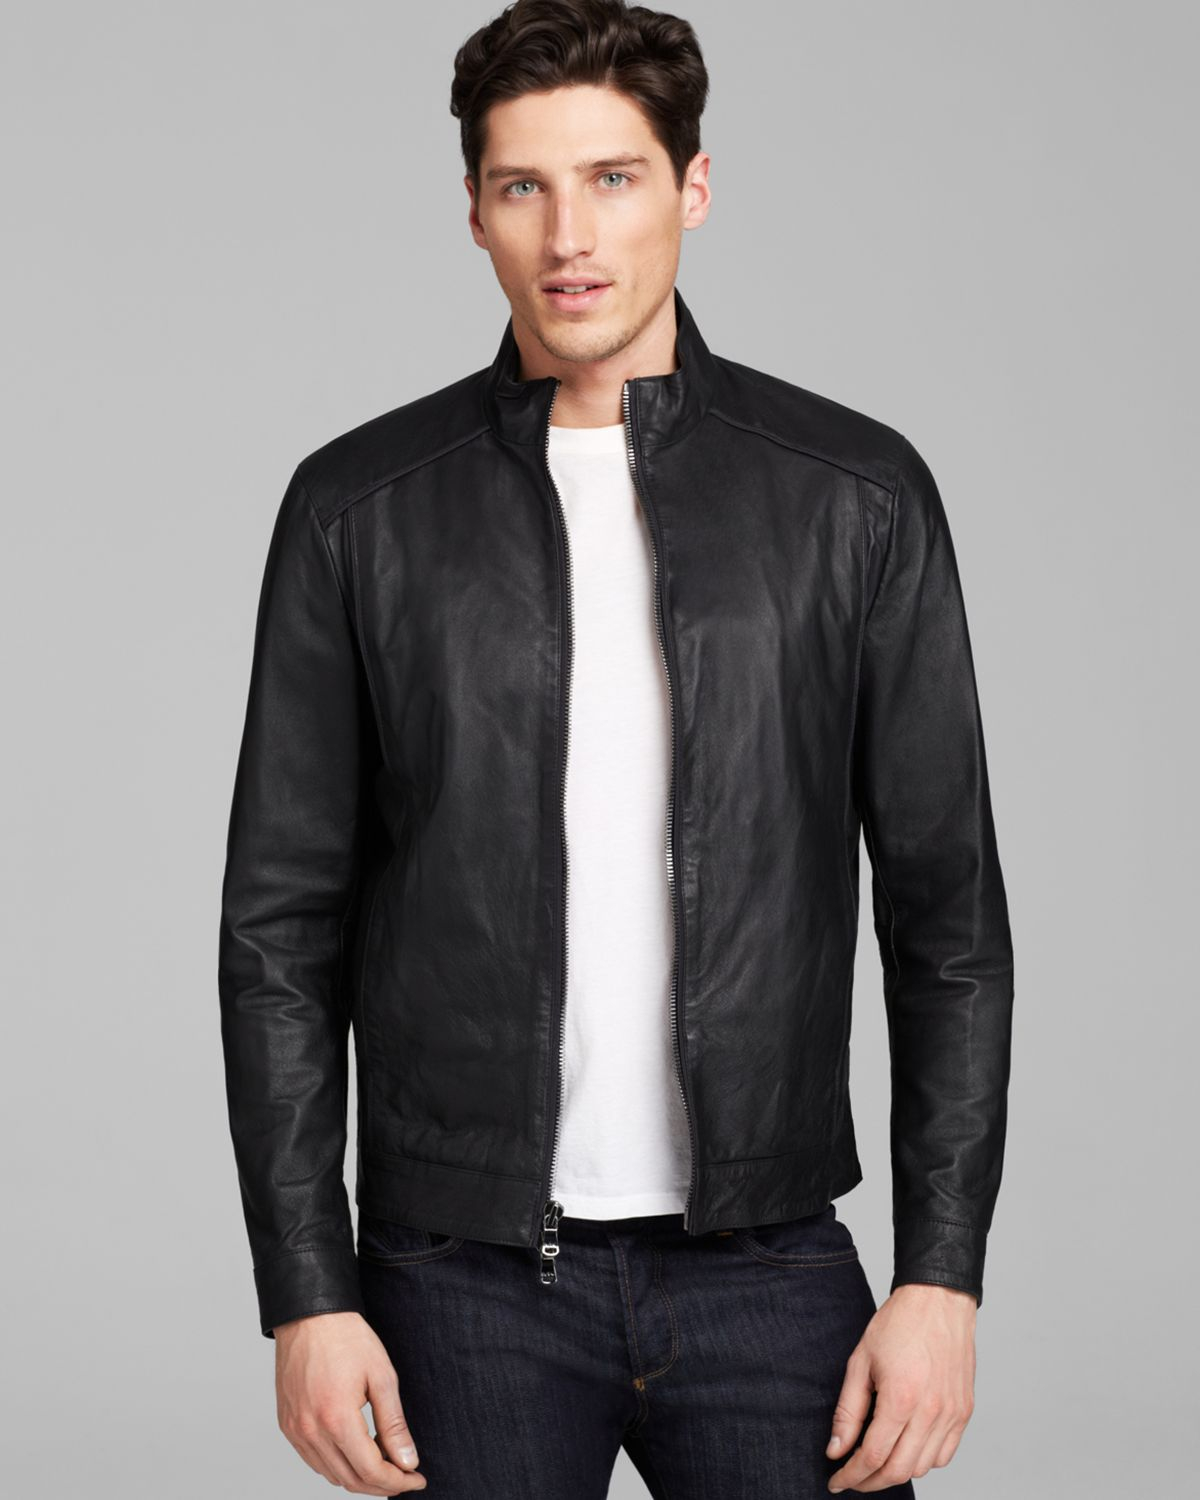 Men S Casual Inspiration 4: Michael Kors Piped Leather Jacket In Black For Men